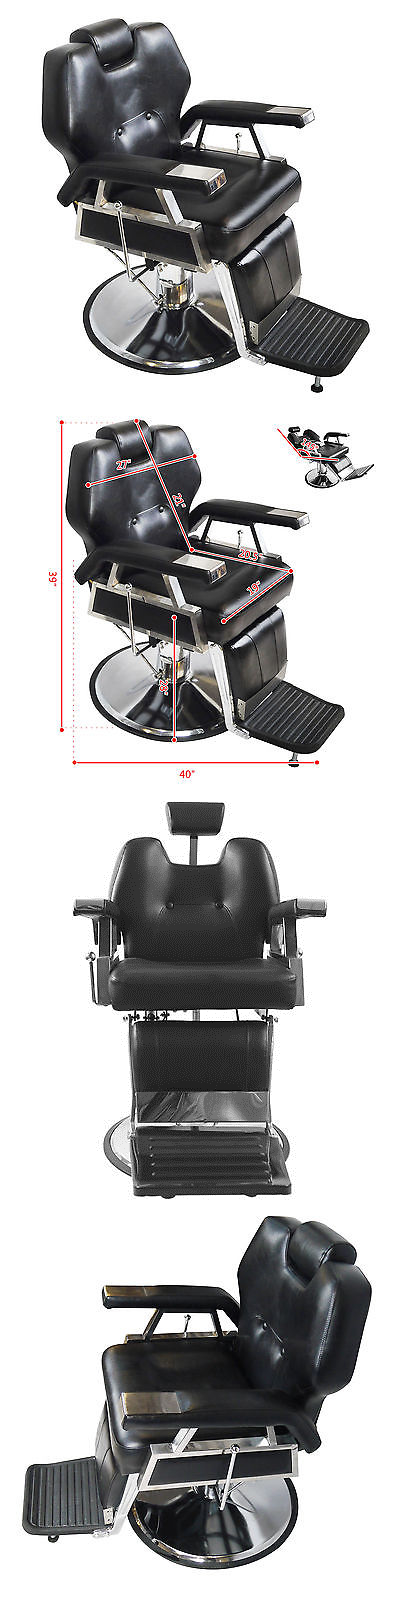 Stylist Stations and Furniture: Hydraulic Recline Barber Chair Heavy Duty Shampoo Salon Beauty Spa Hair Styling -> BUY IT NOW ONLY: $259.9 on eBay!